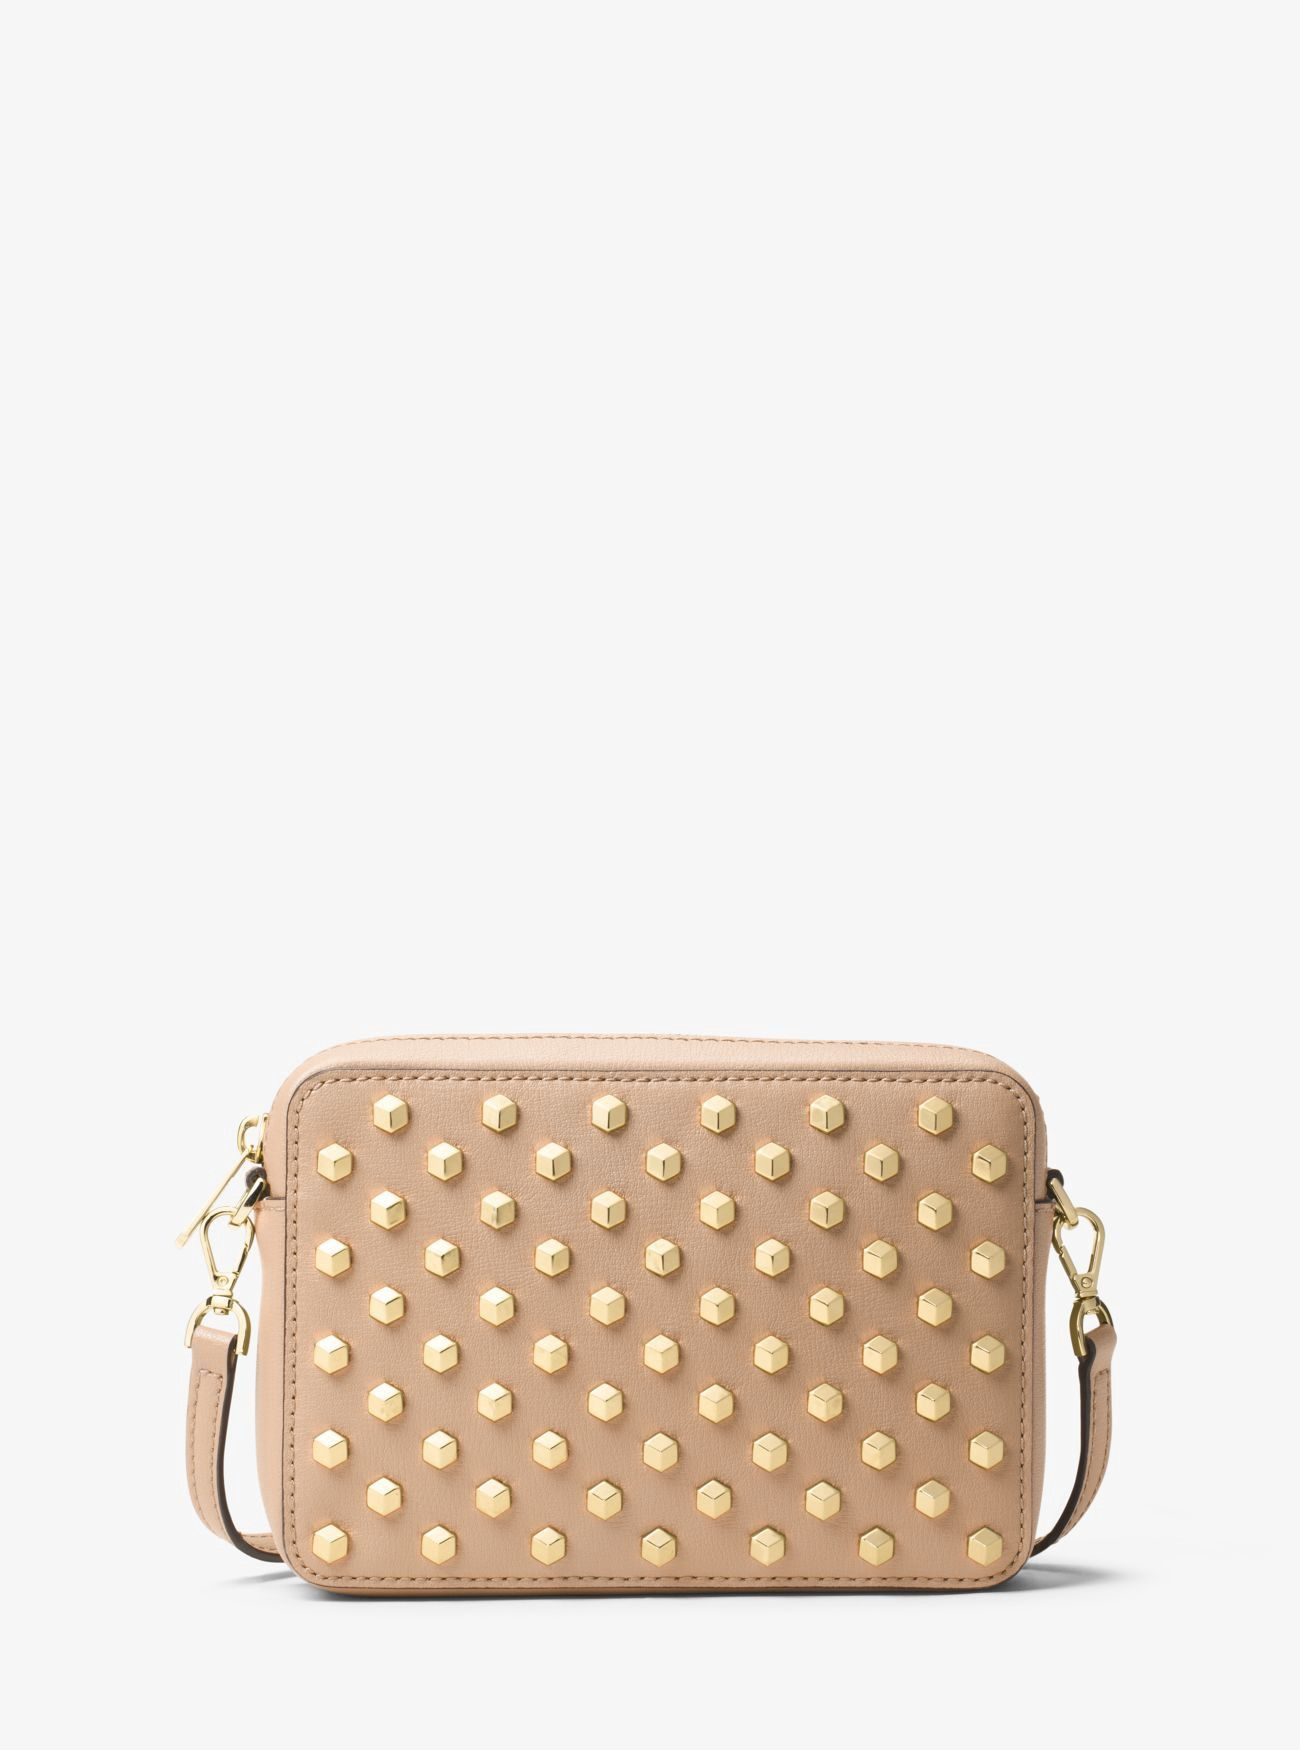 f4348963863 MICHAEL KORS Scout Studded Leather Crossbody.  michaelkors  bags  shoulder  bags  leather  polyester  crossbody  lining